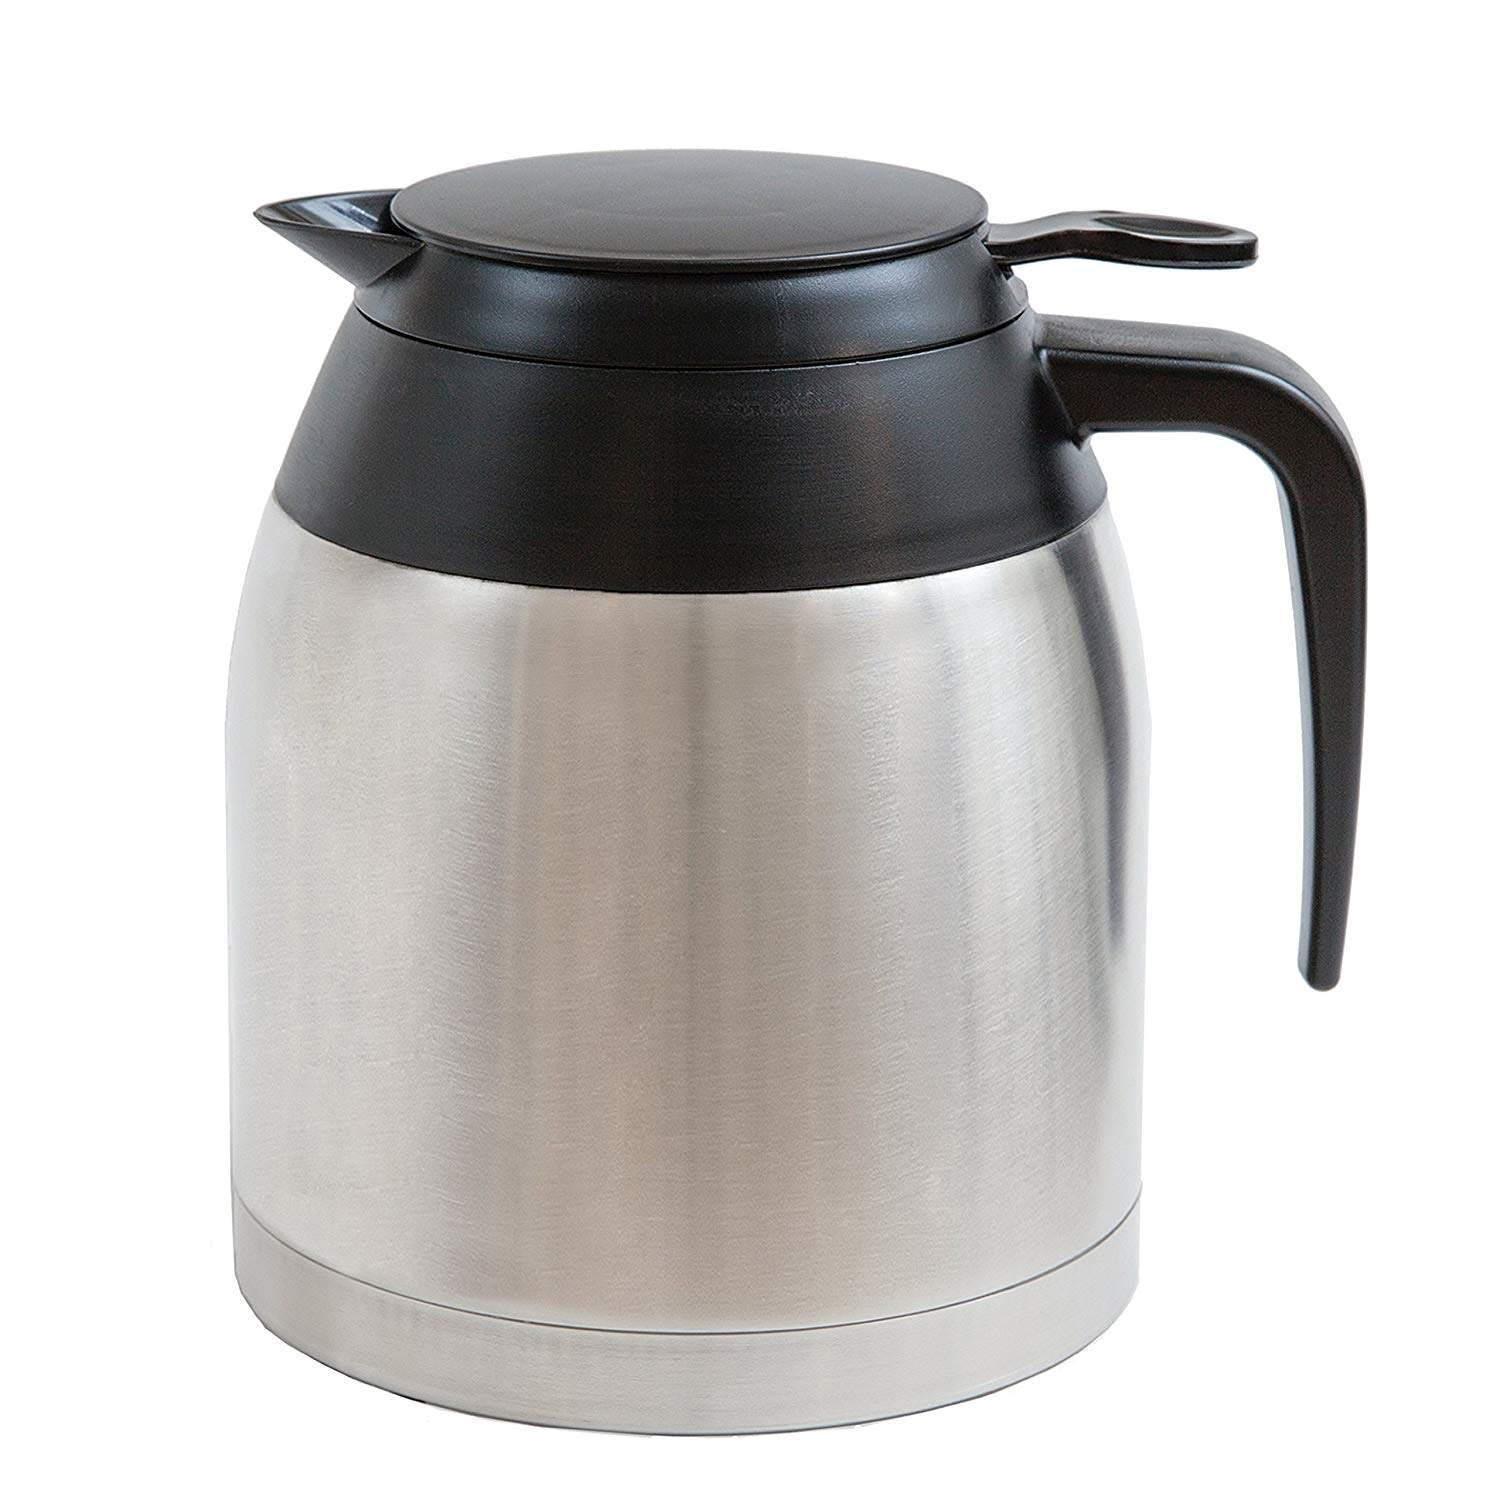 Bonavita Stainless Steel Carafe with Lid- Replacement Thermal Carafe BV03001US - 1.3 Liter, 8 Cup